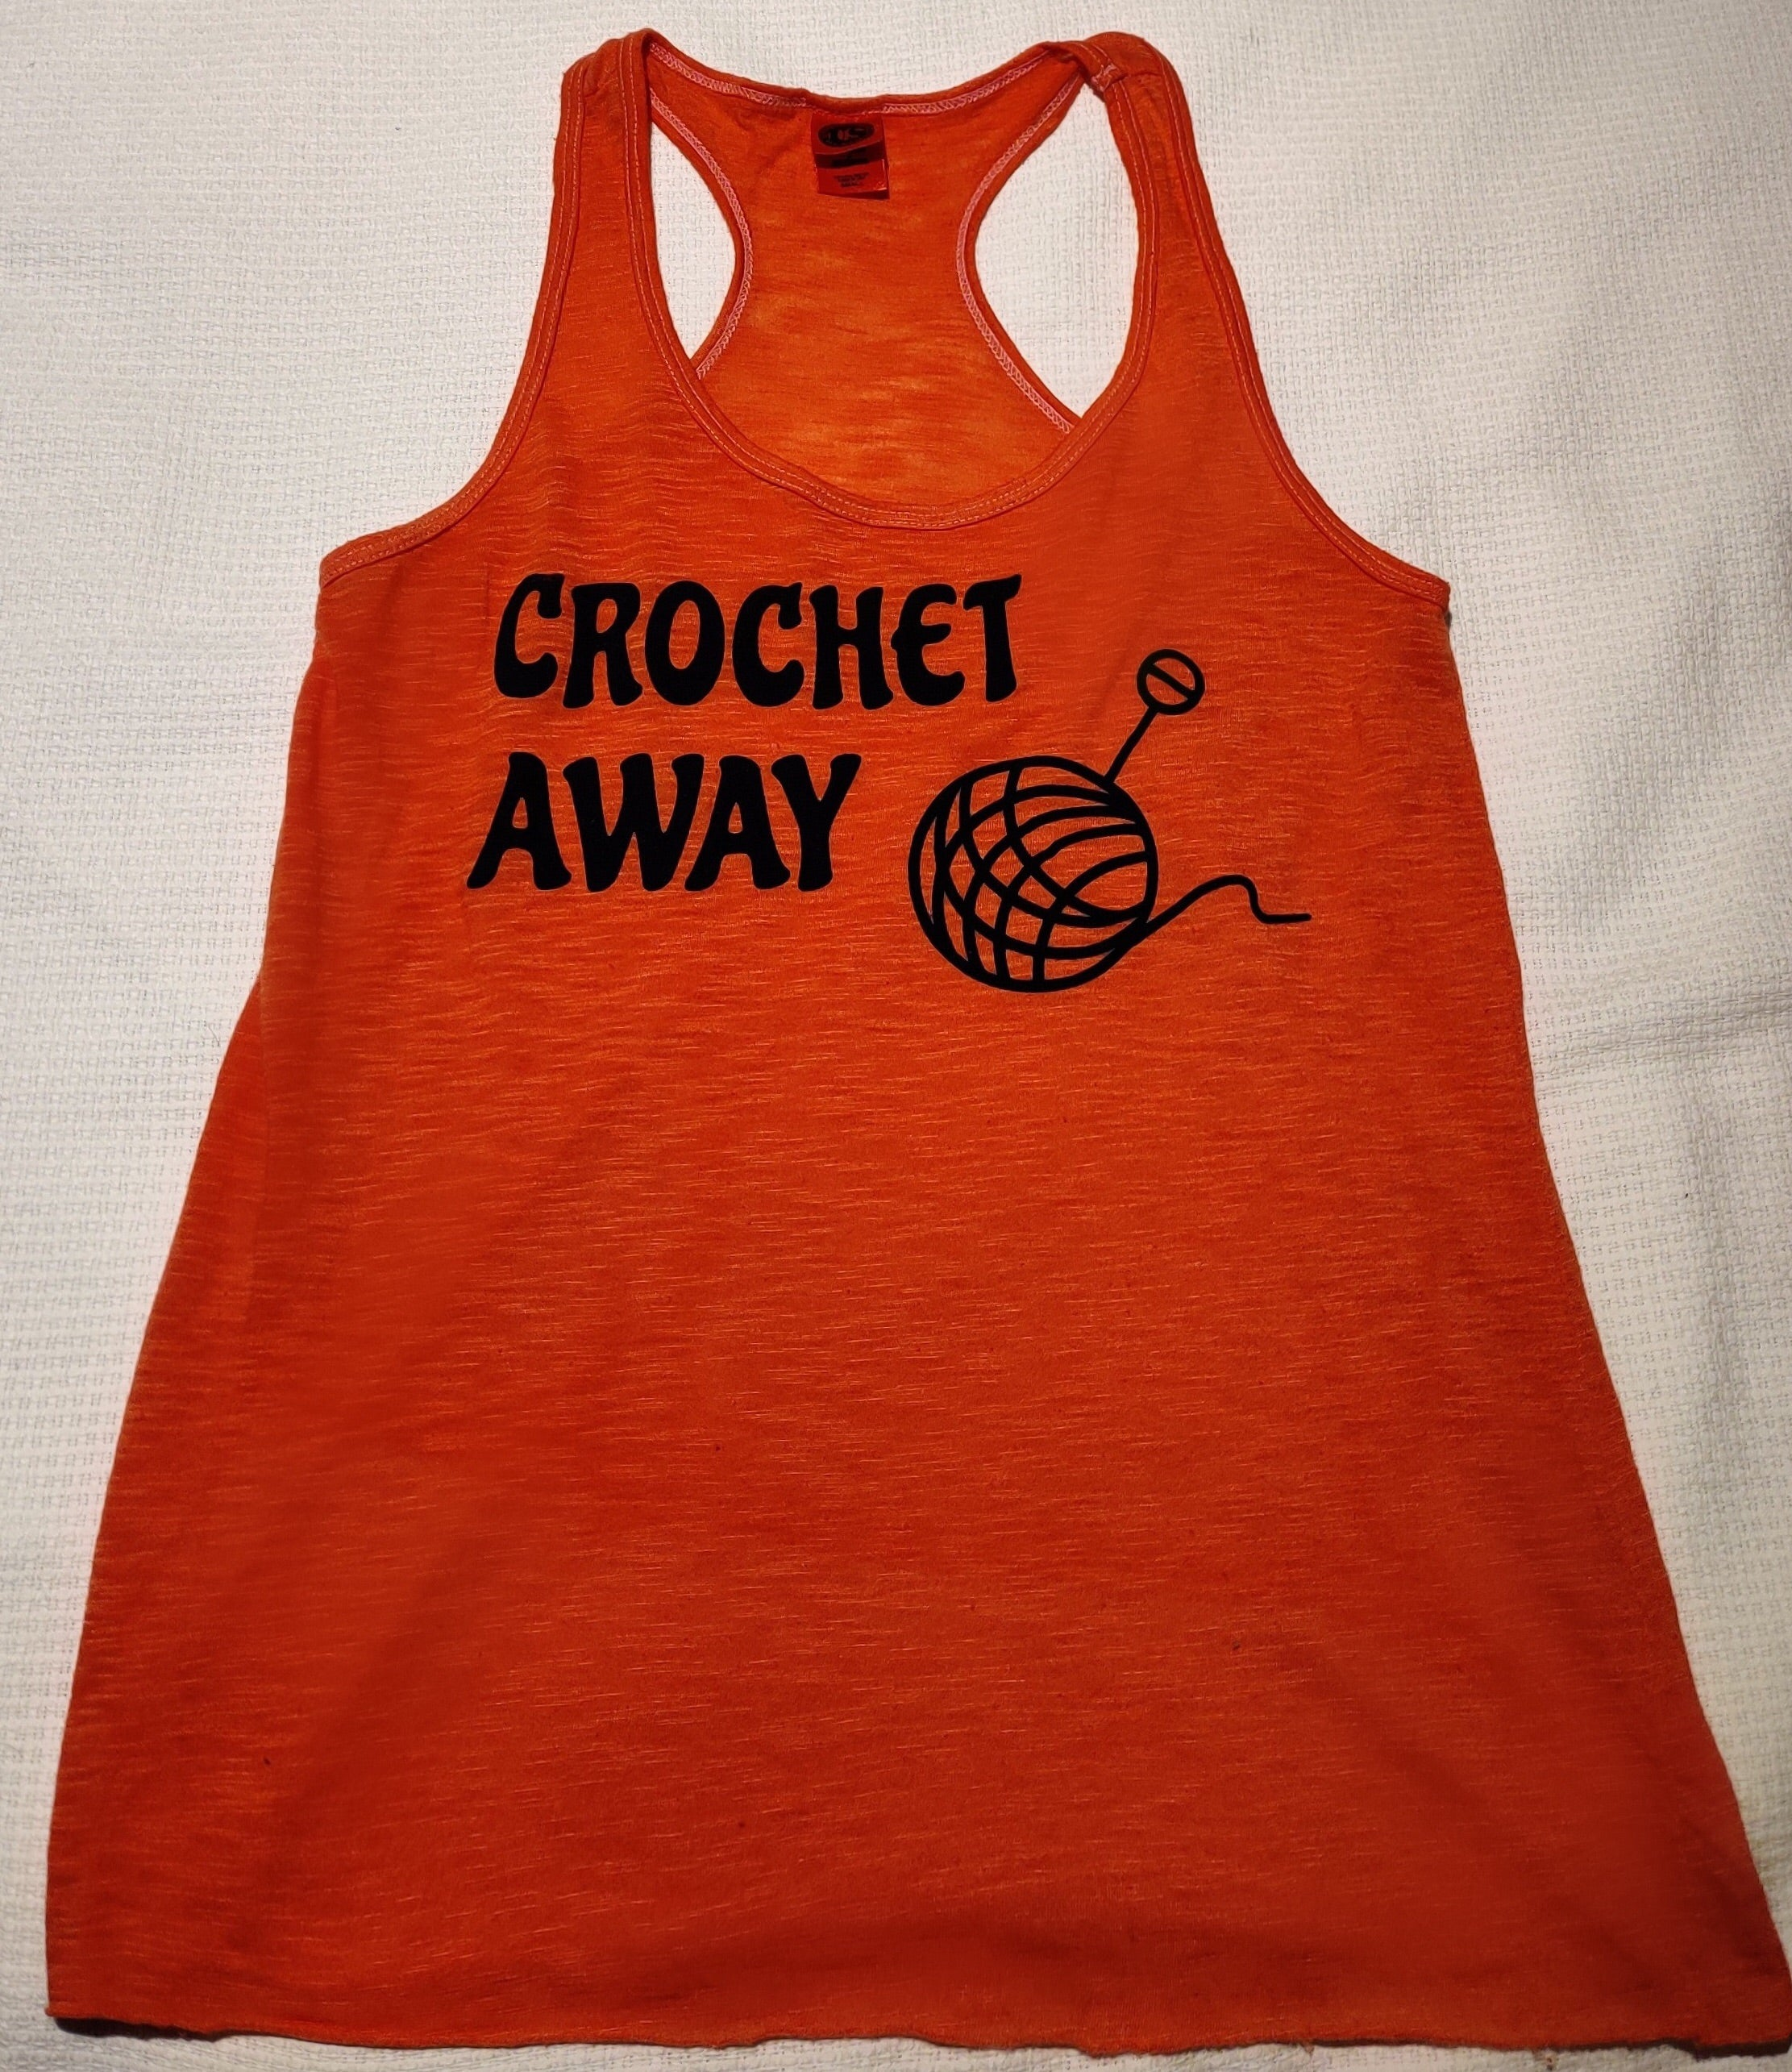 Crochet Away Tank Tee with Yarn/Hook